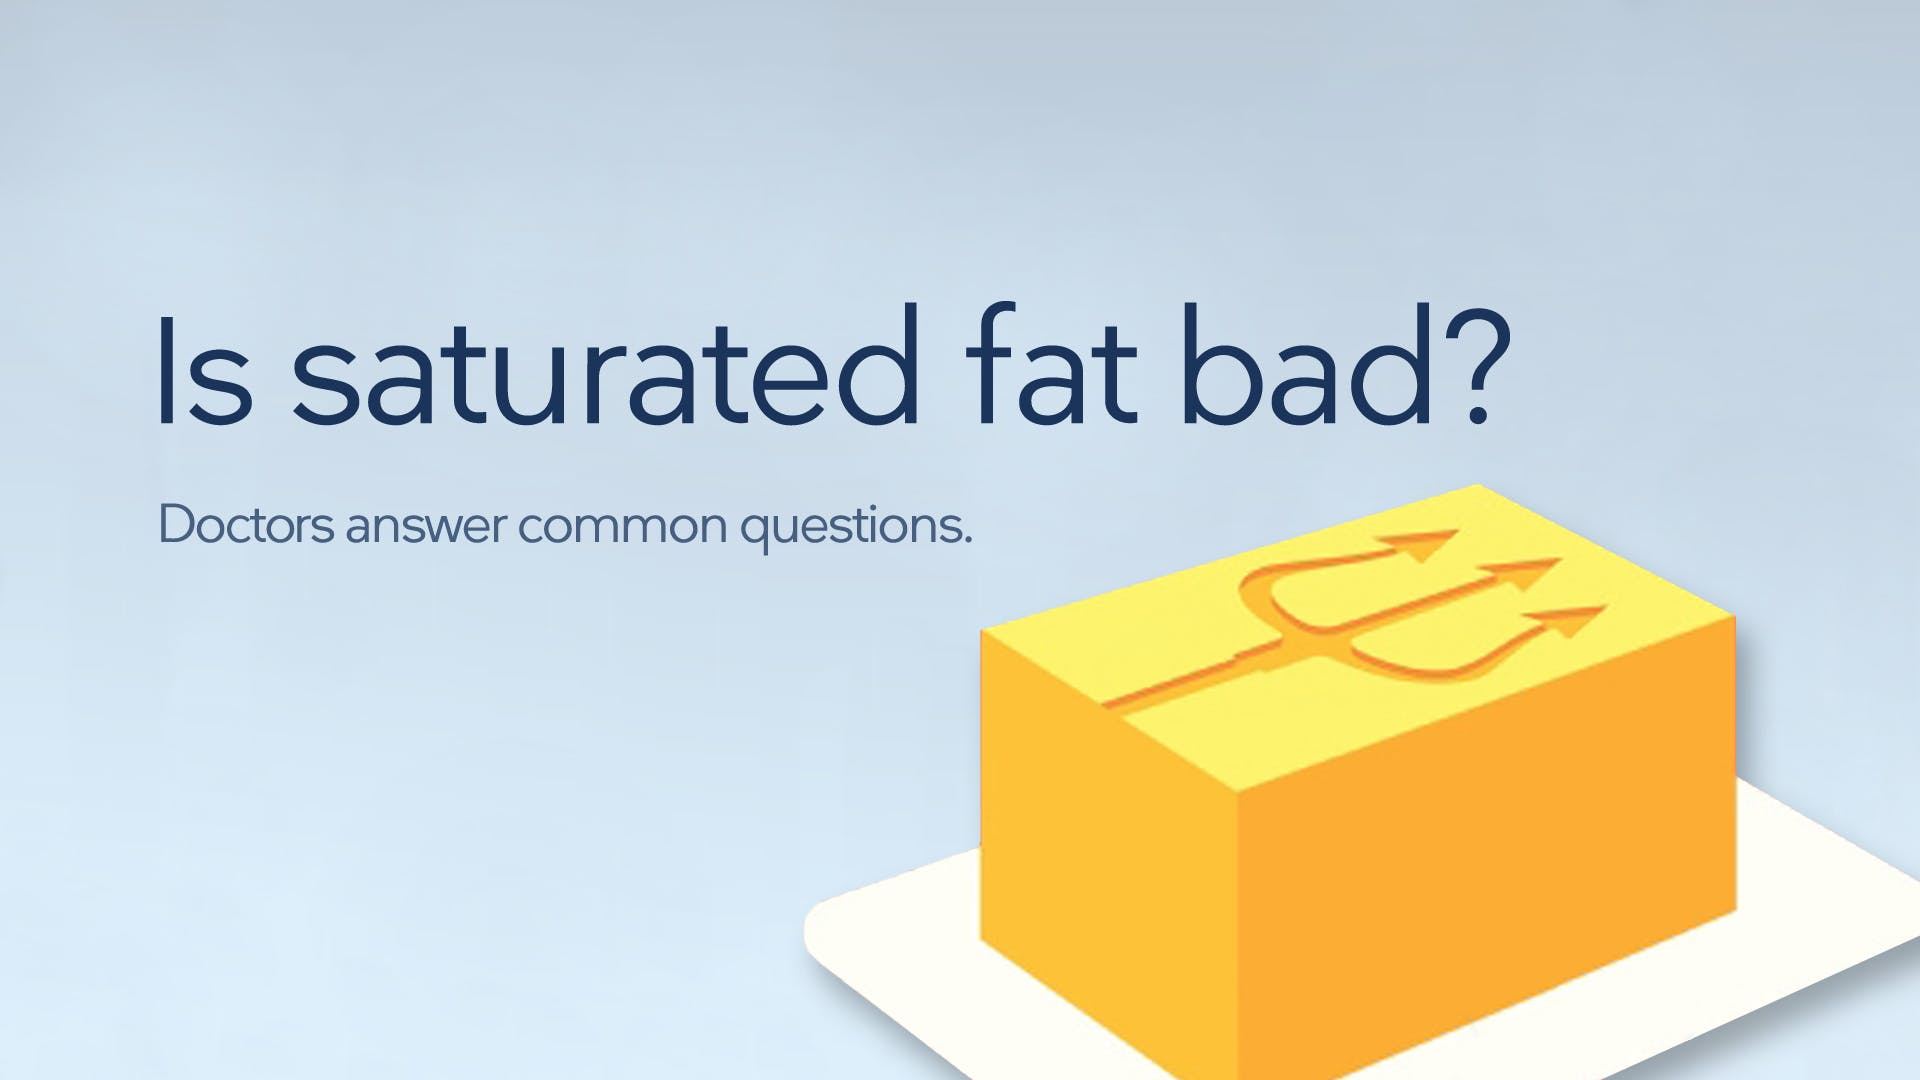 #1 low-carb question: Is saturated fat bad?